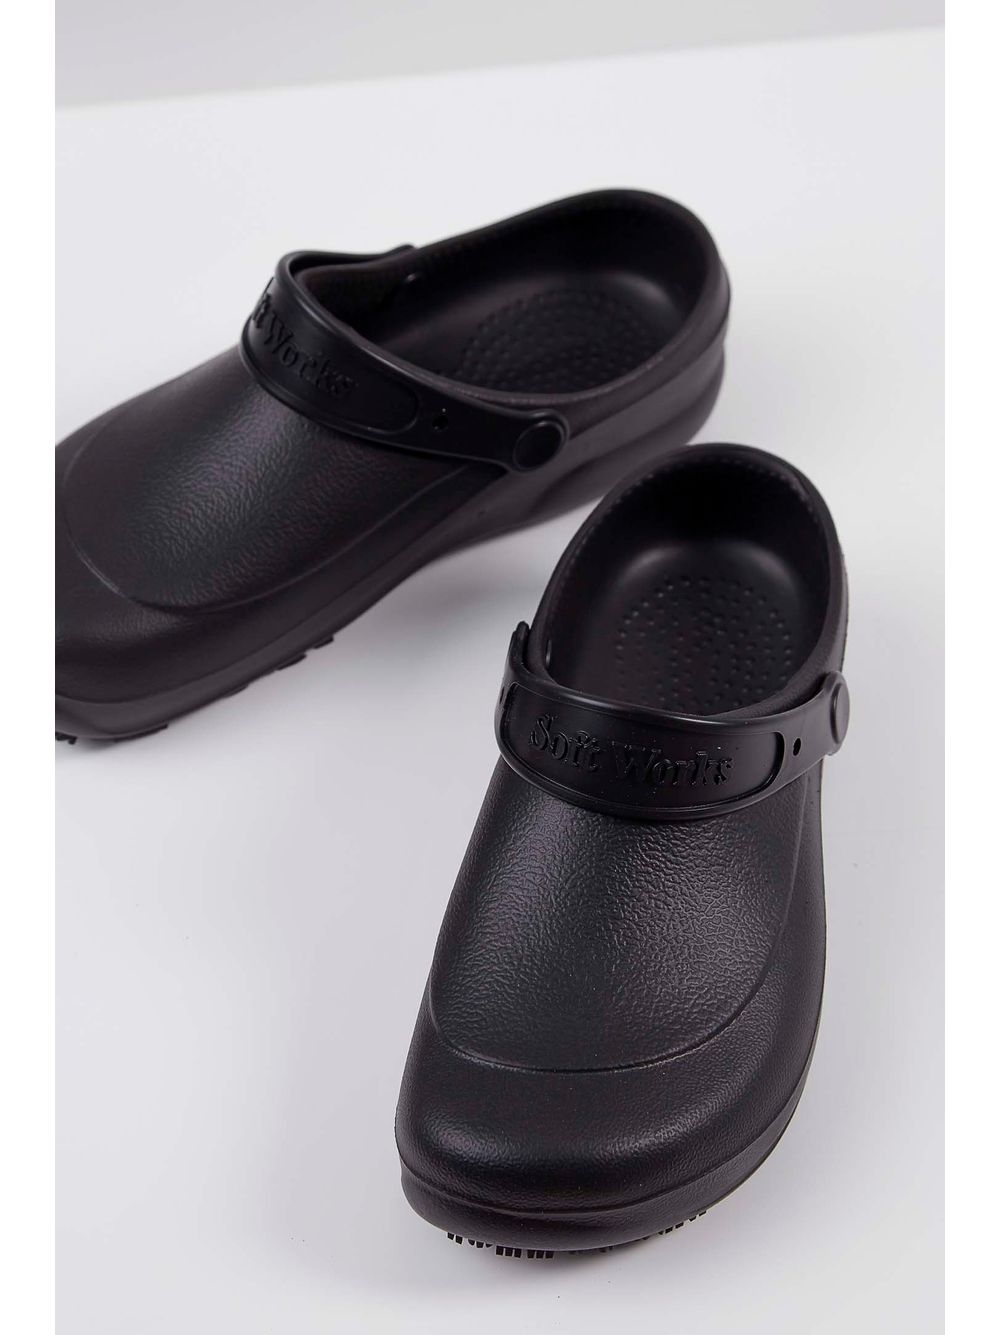 766a203b8 Babuche Crocs Soft Walk Preto - pittol